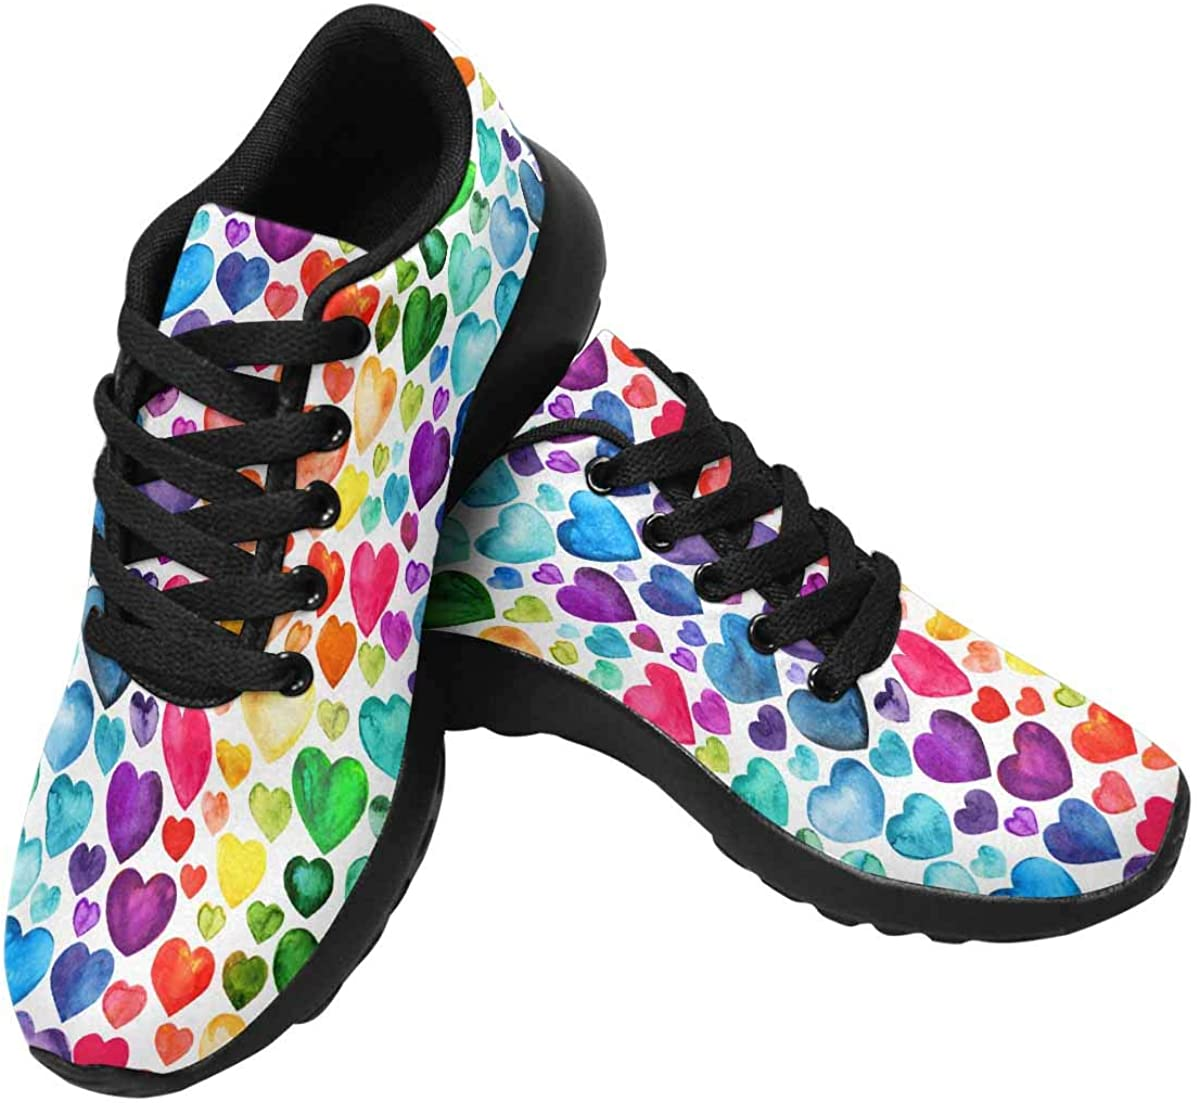 InterestPrint Women's Running Shoes Breathable Athletic 毎日続々入荷 セール品 - Casual